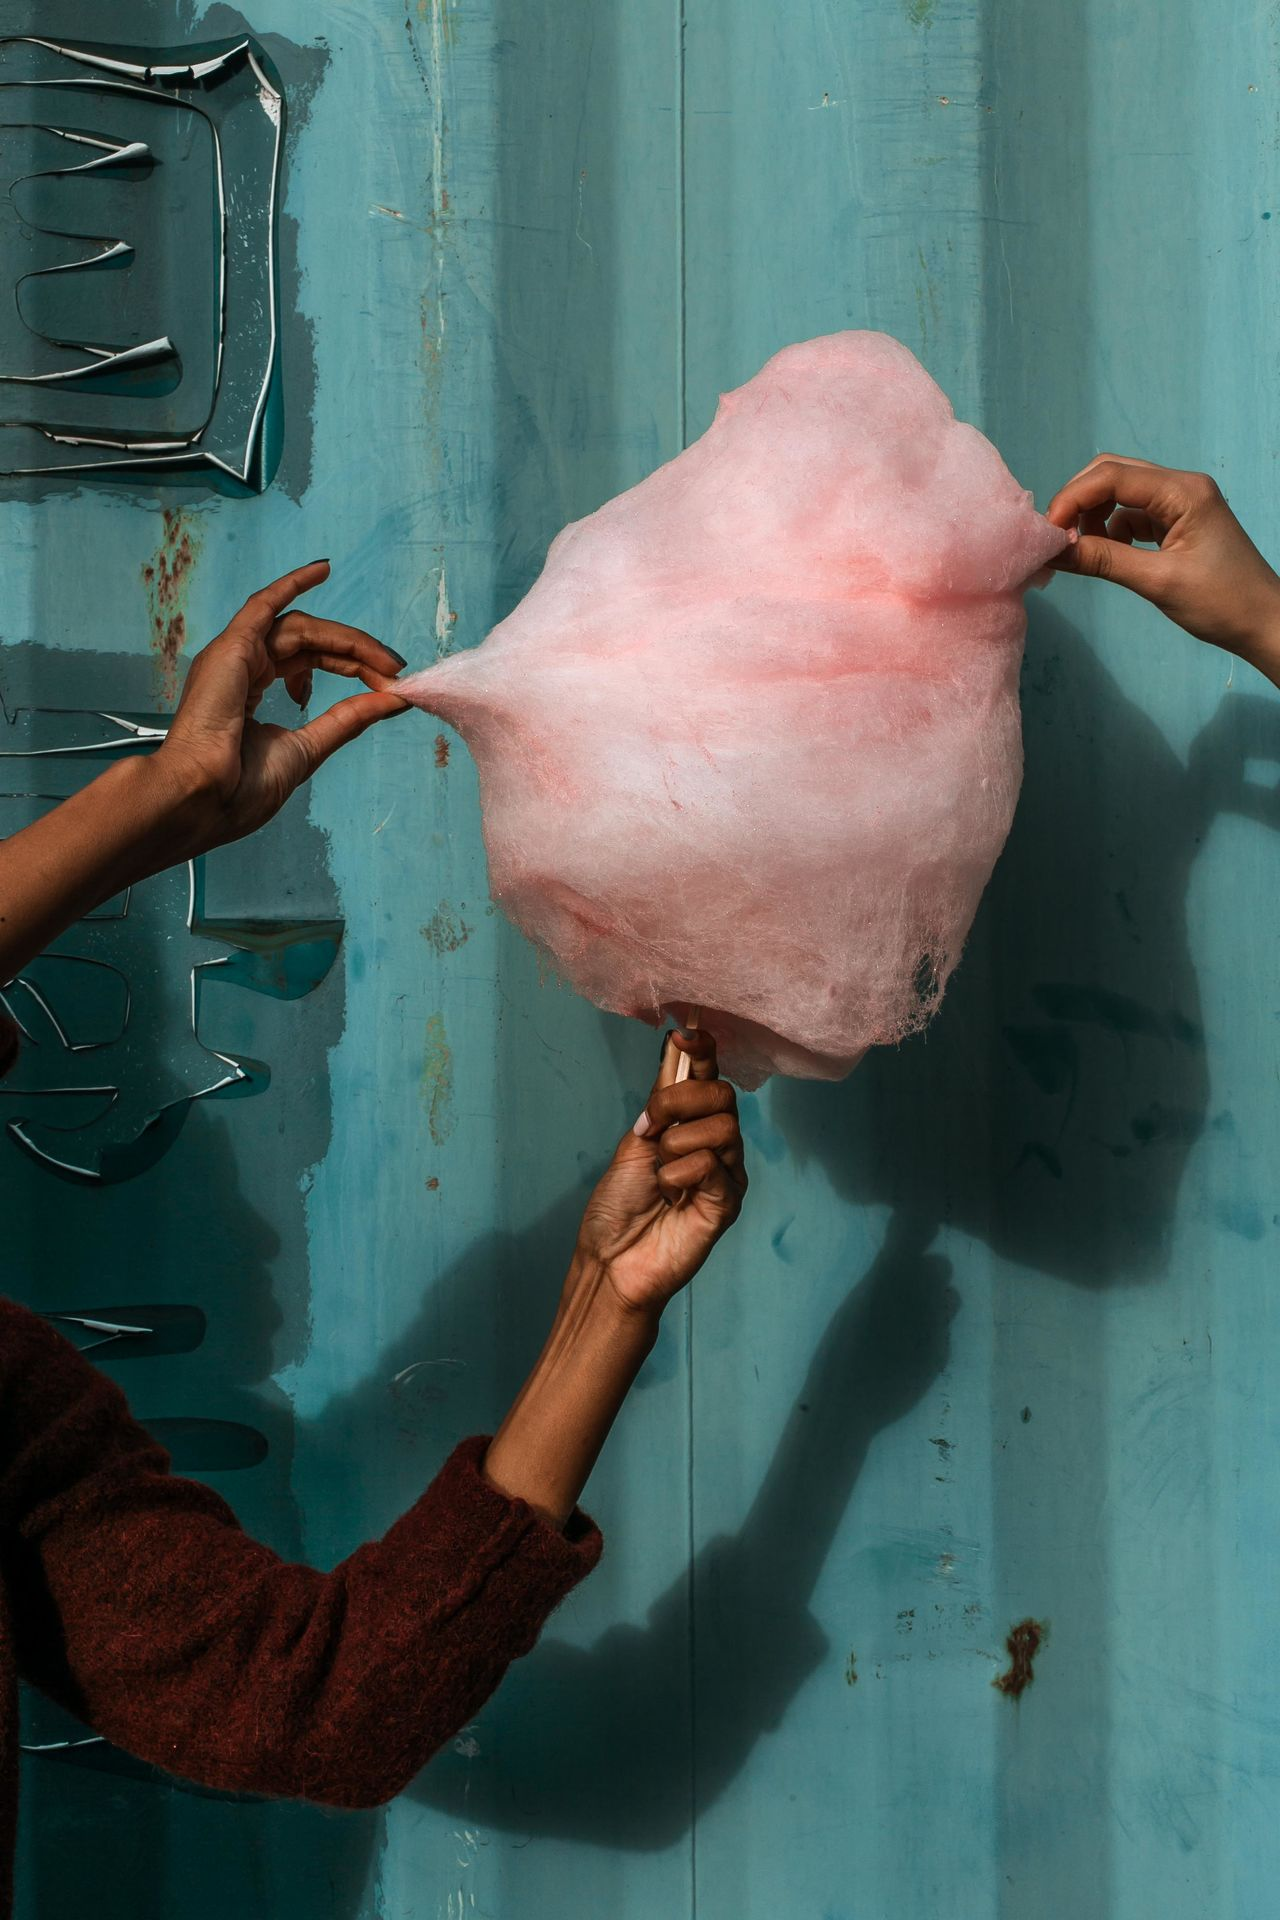 Corrugated Iron,  Cotton Candy,  Cropped,  Day,  Food